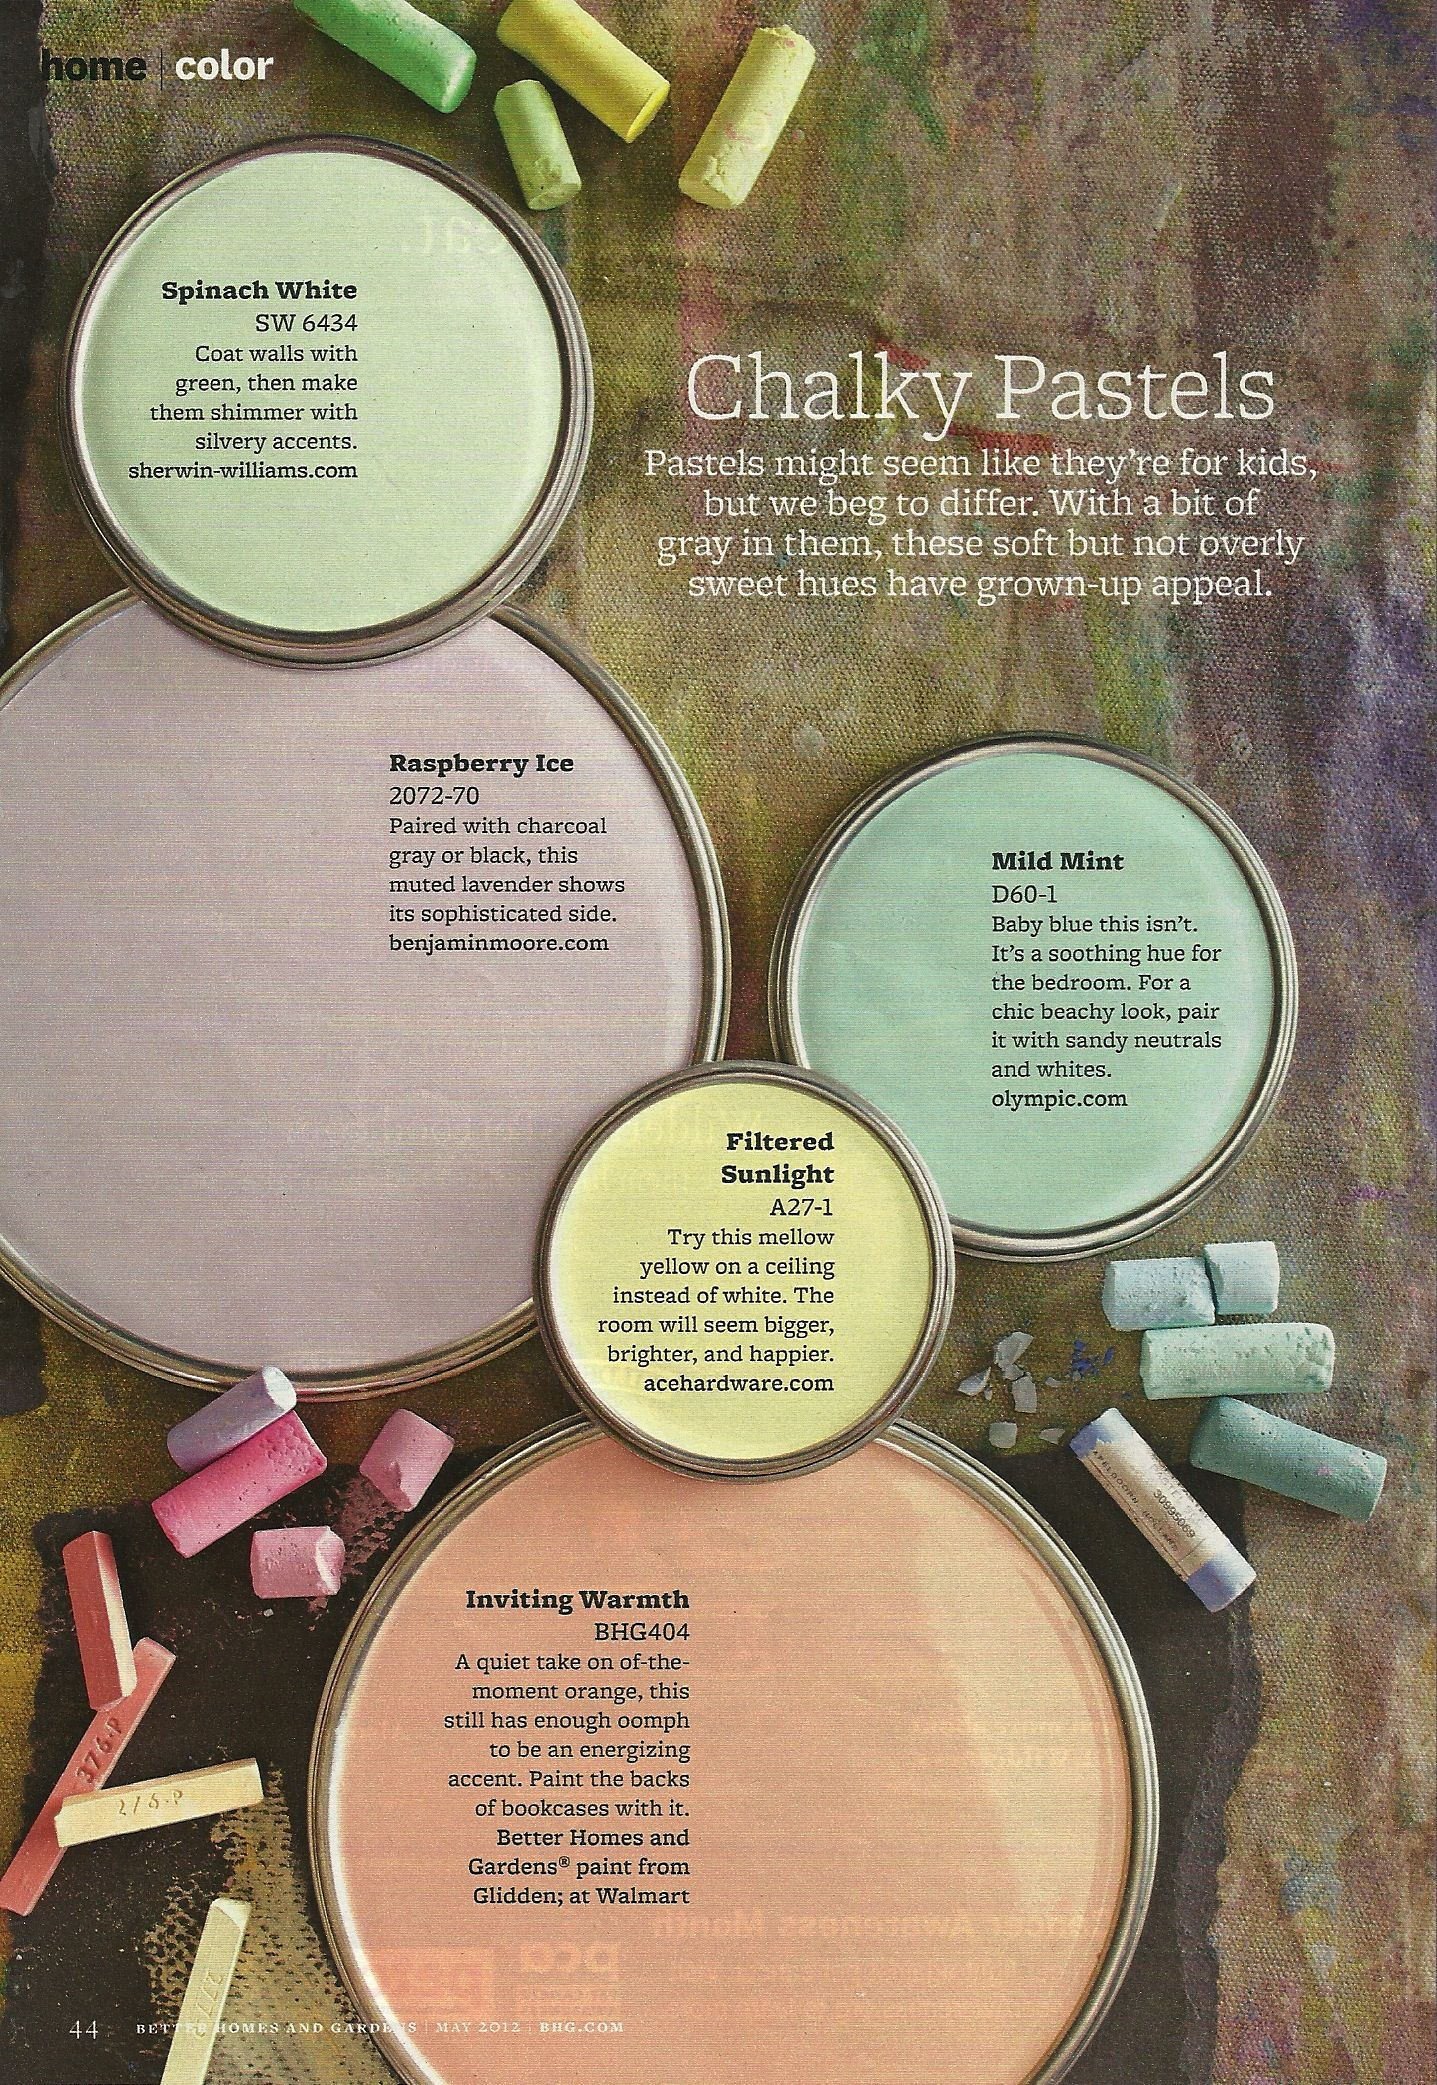 Chalky Pastels - BHG